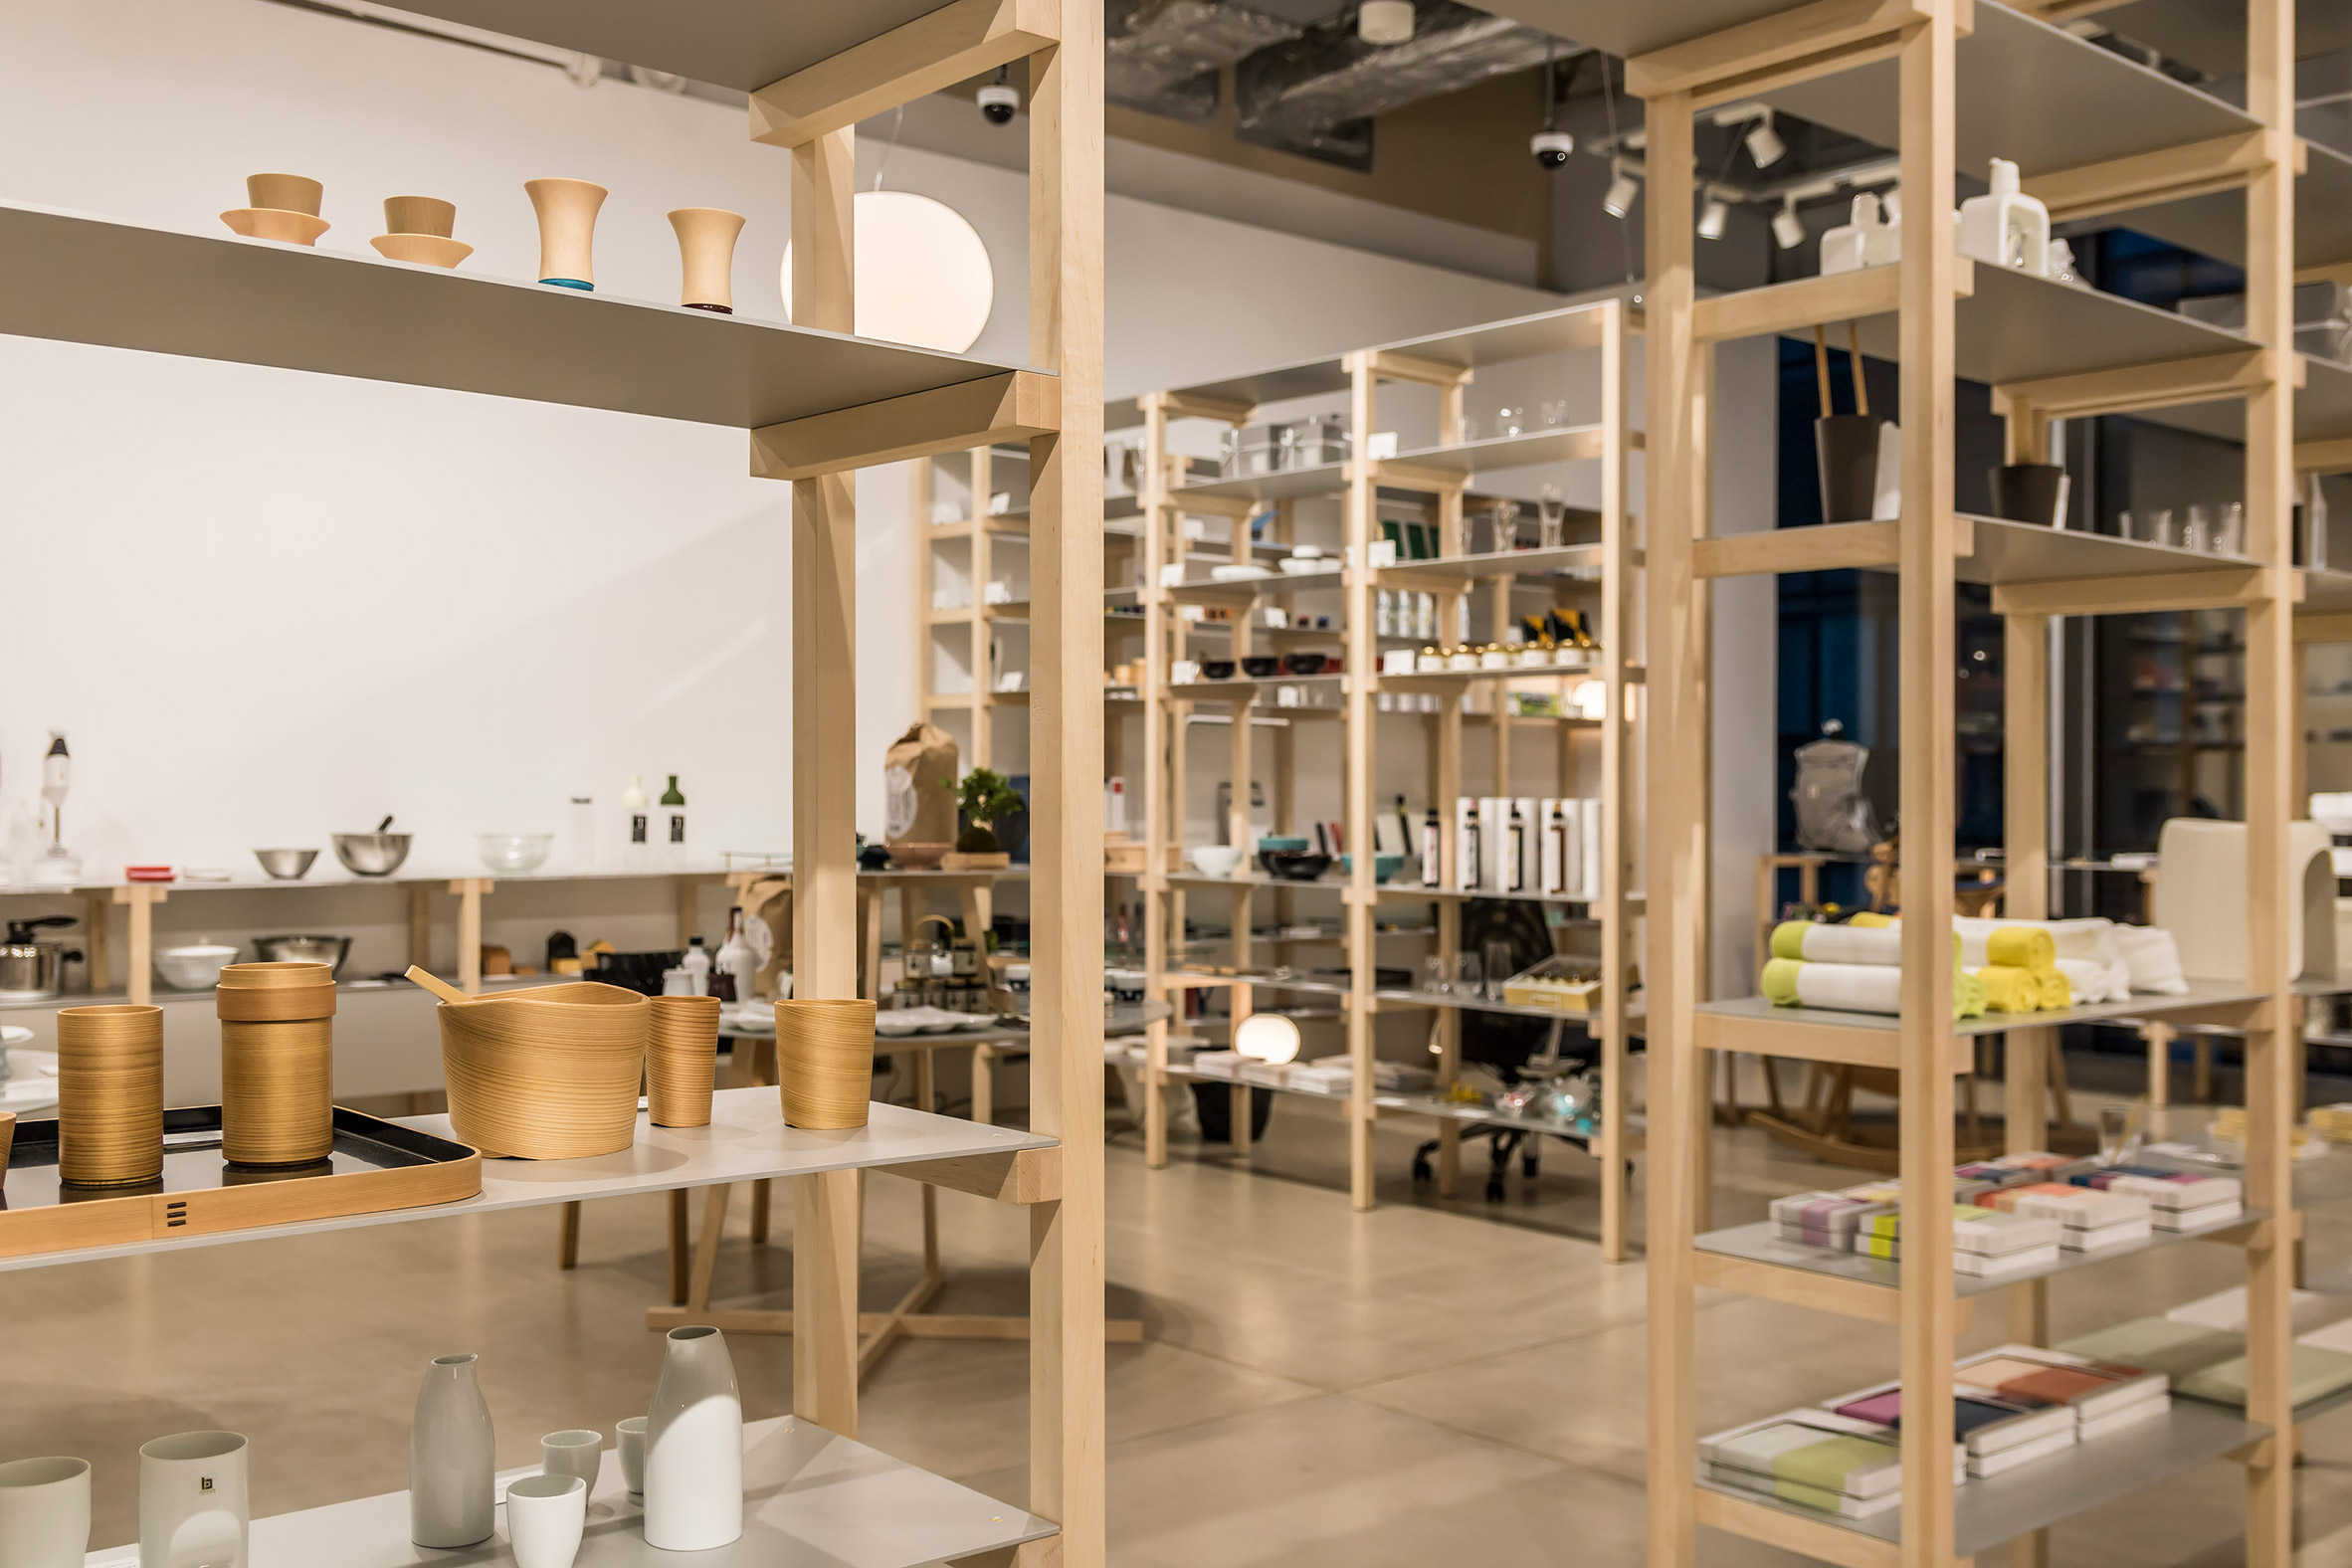 Jasper Morrison creates house-like layout for Tokyo's Good Design Store